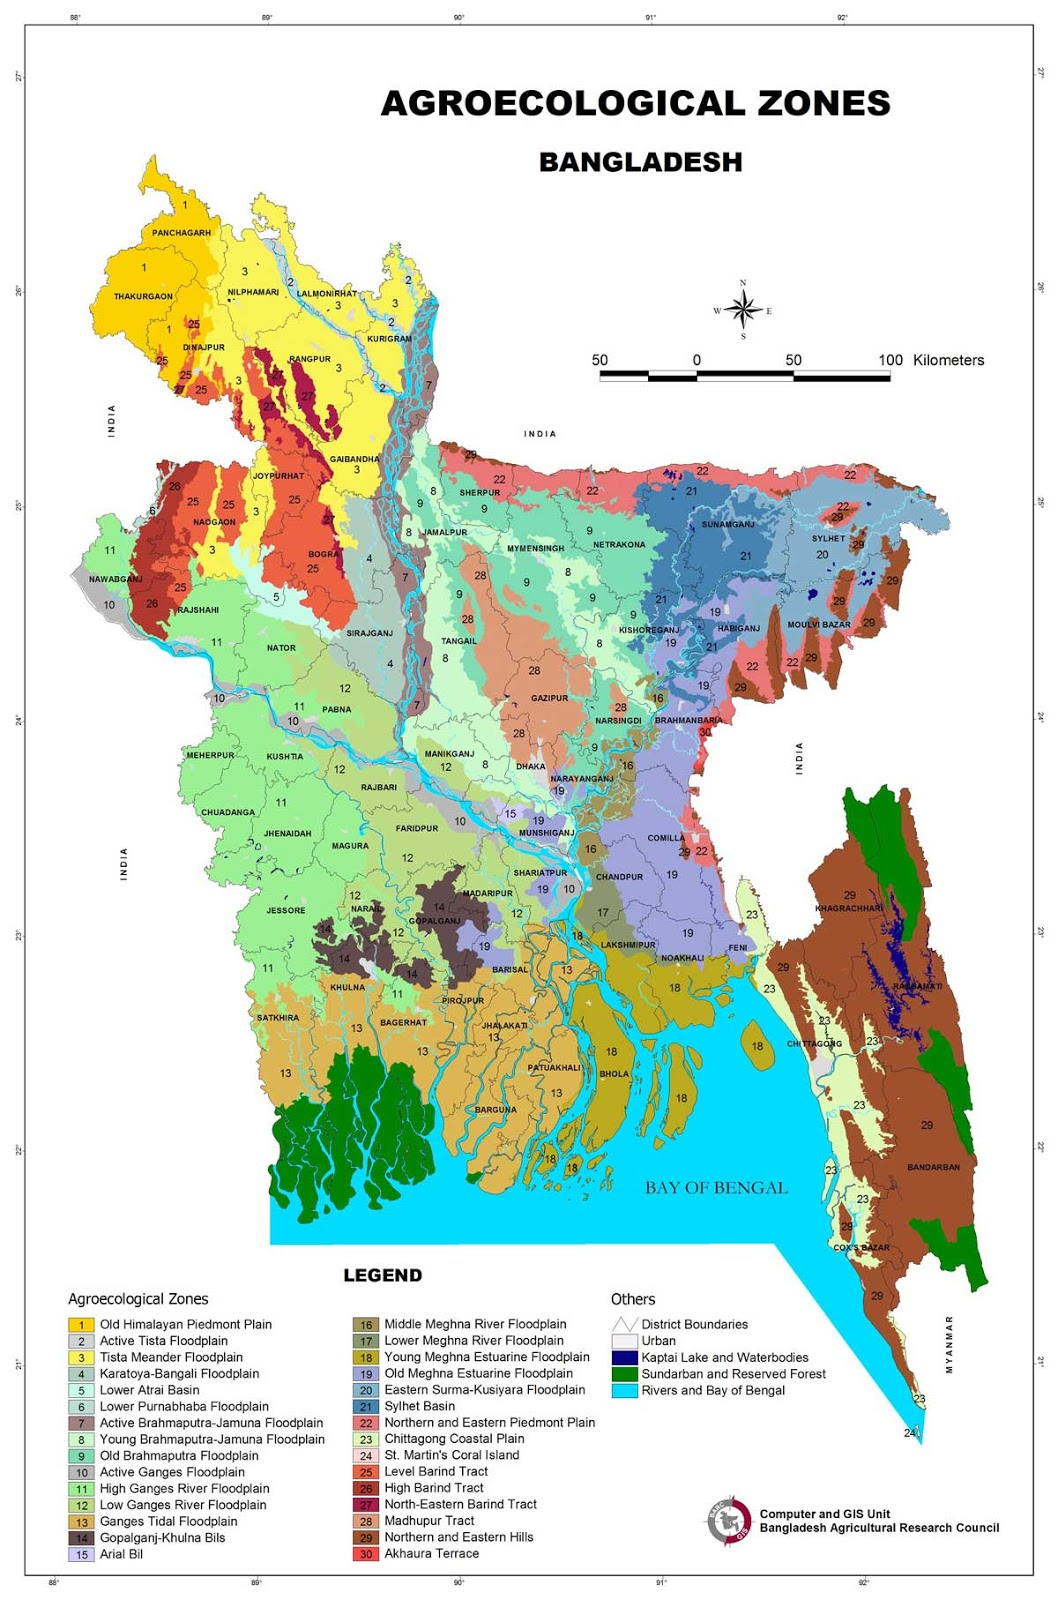 Agroecological Zones of Bangladesh